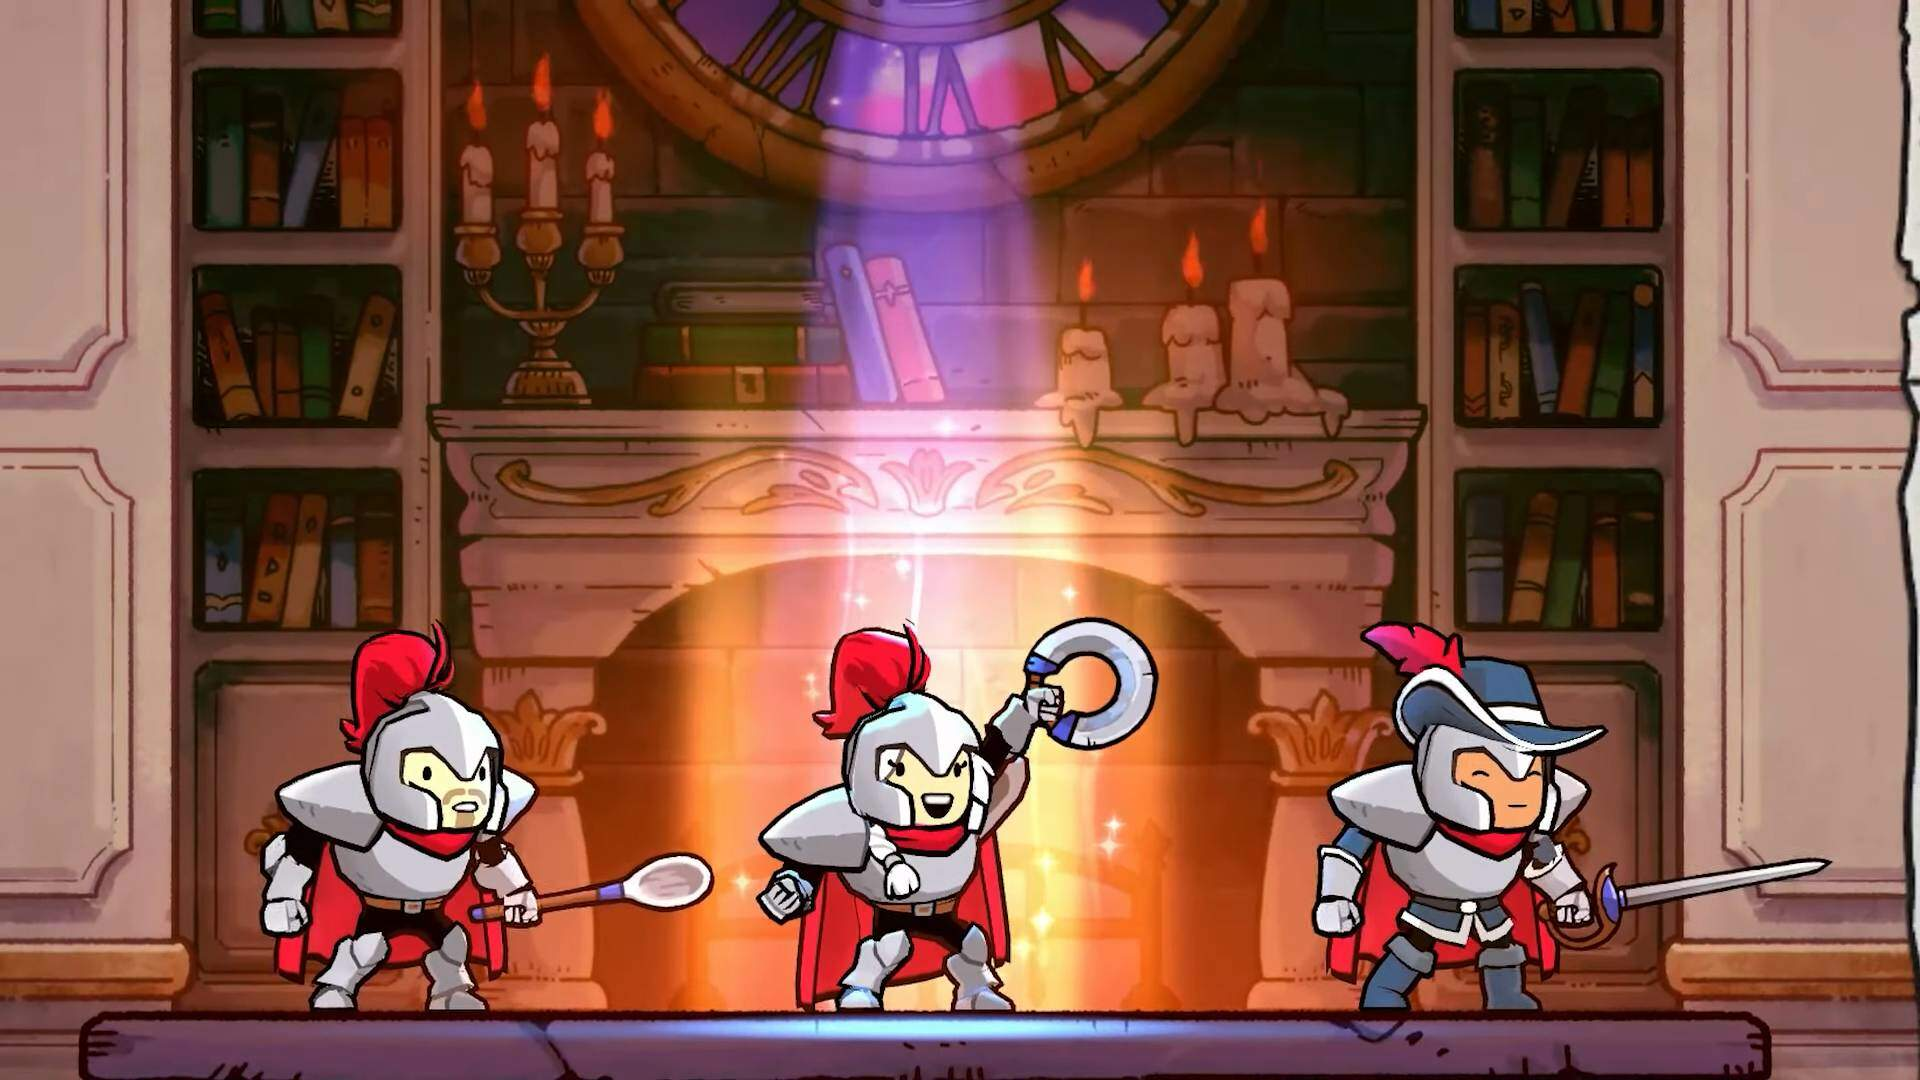 Rogue Legacy 2 Will Throw More Heirs Into the Fire When It Enters Early Access Next Month